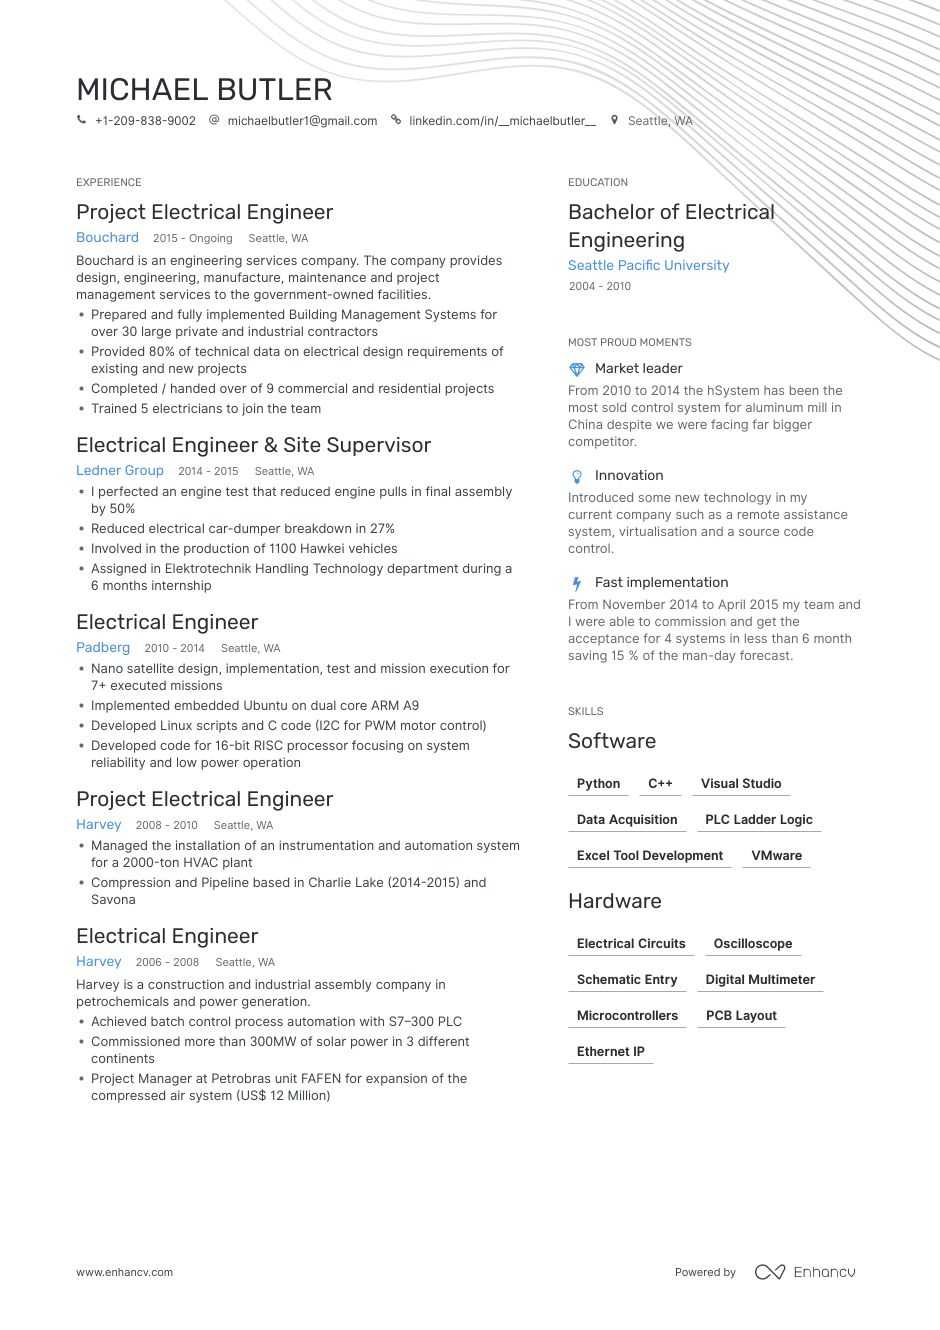 electrical engineer resume examples pro tips featured enhancv statements for engineering Resume Power Statements For Resume